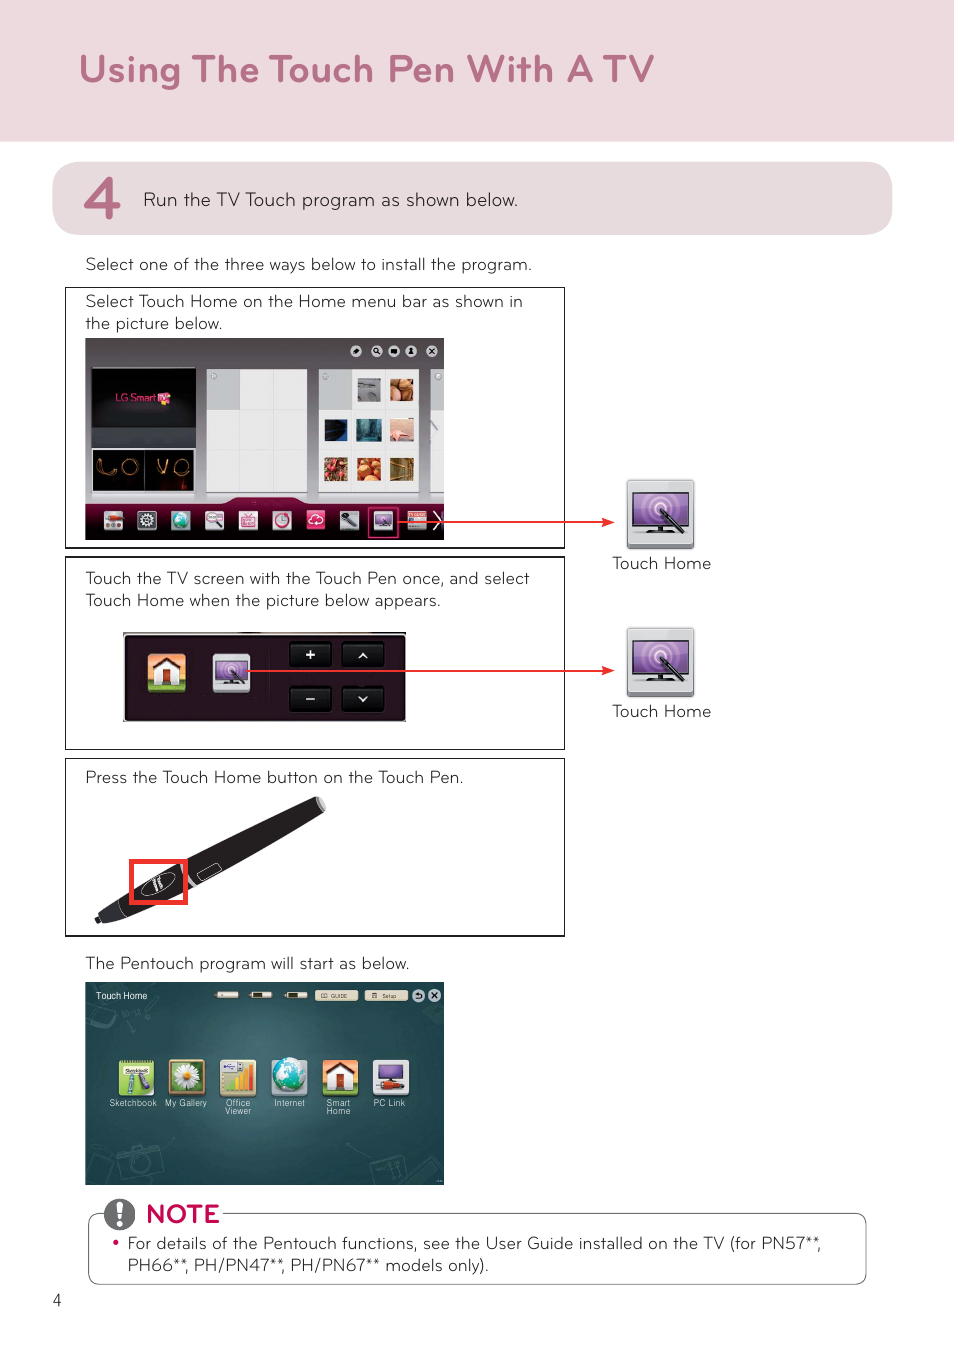 Using the touch pen with a tv, Run the tv touch program as